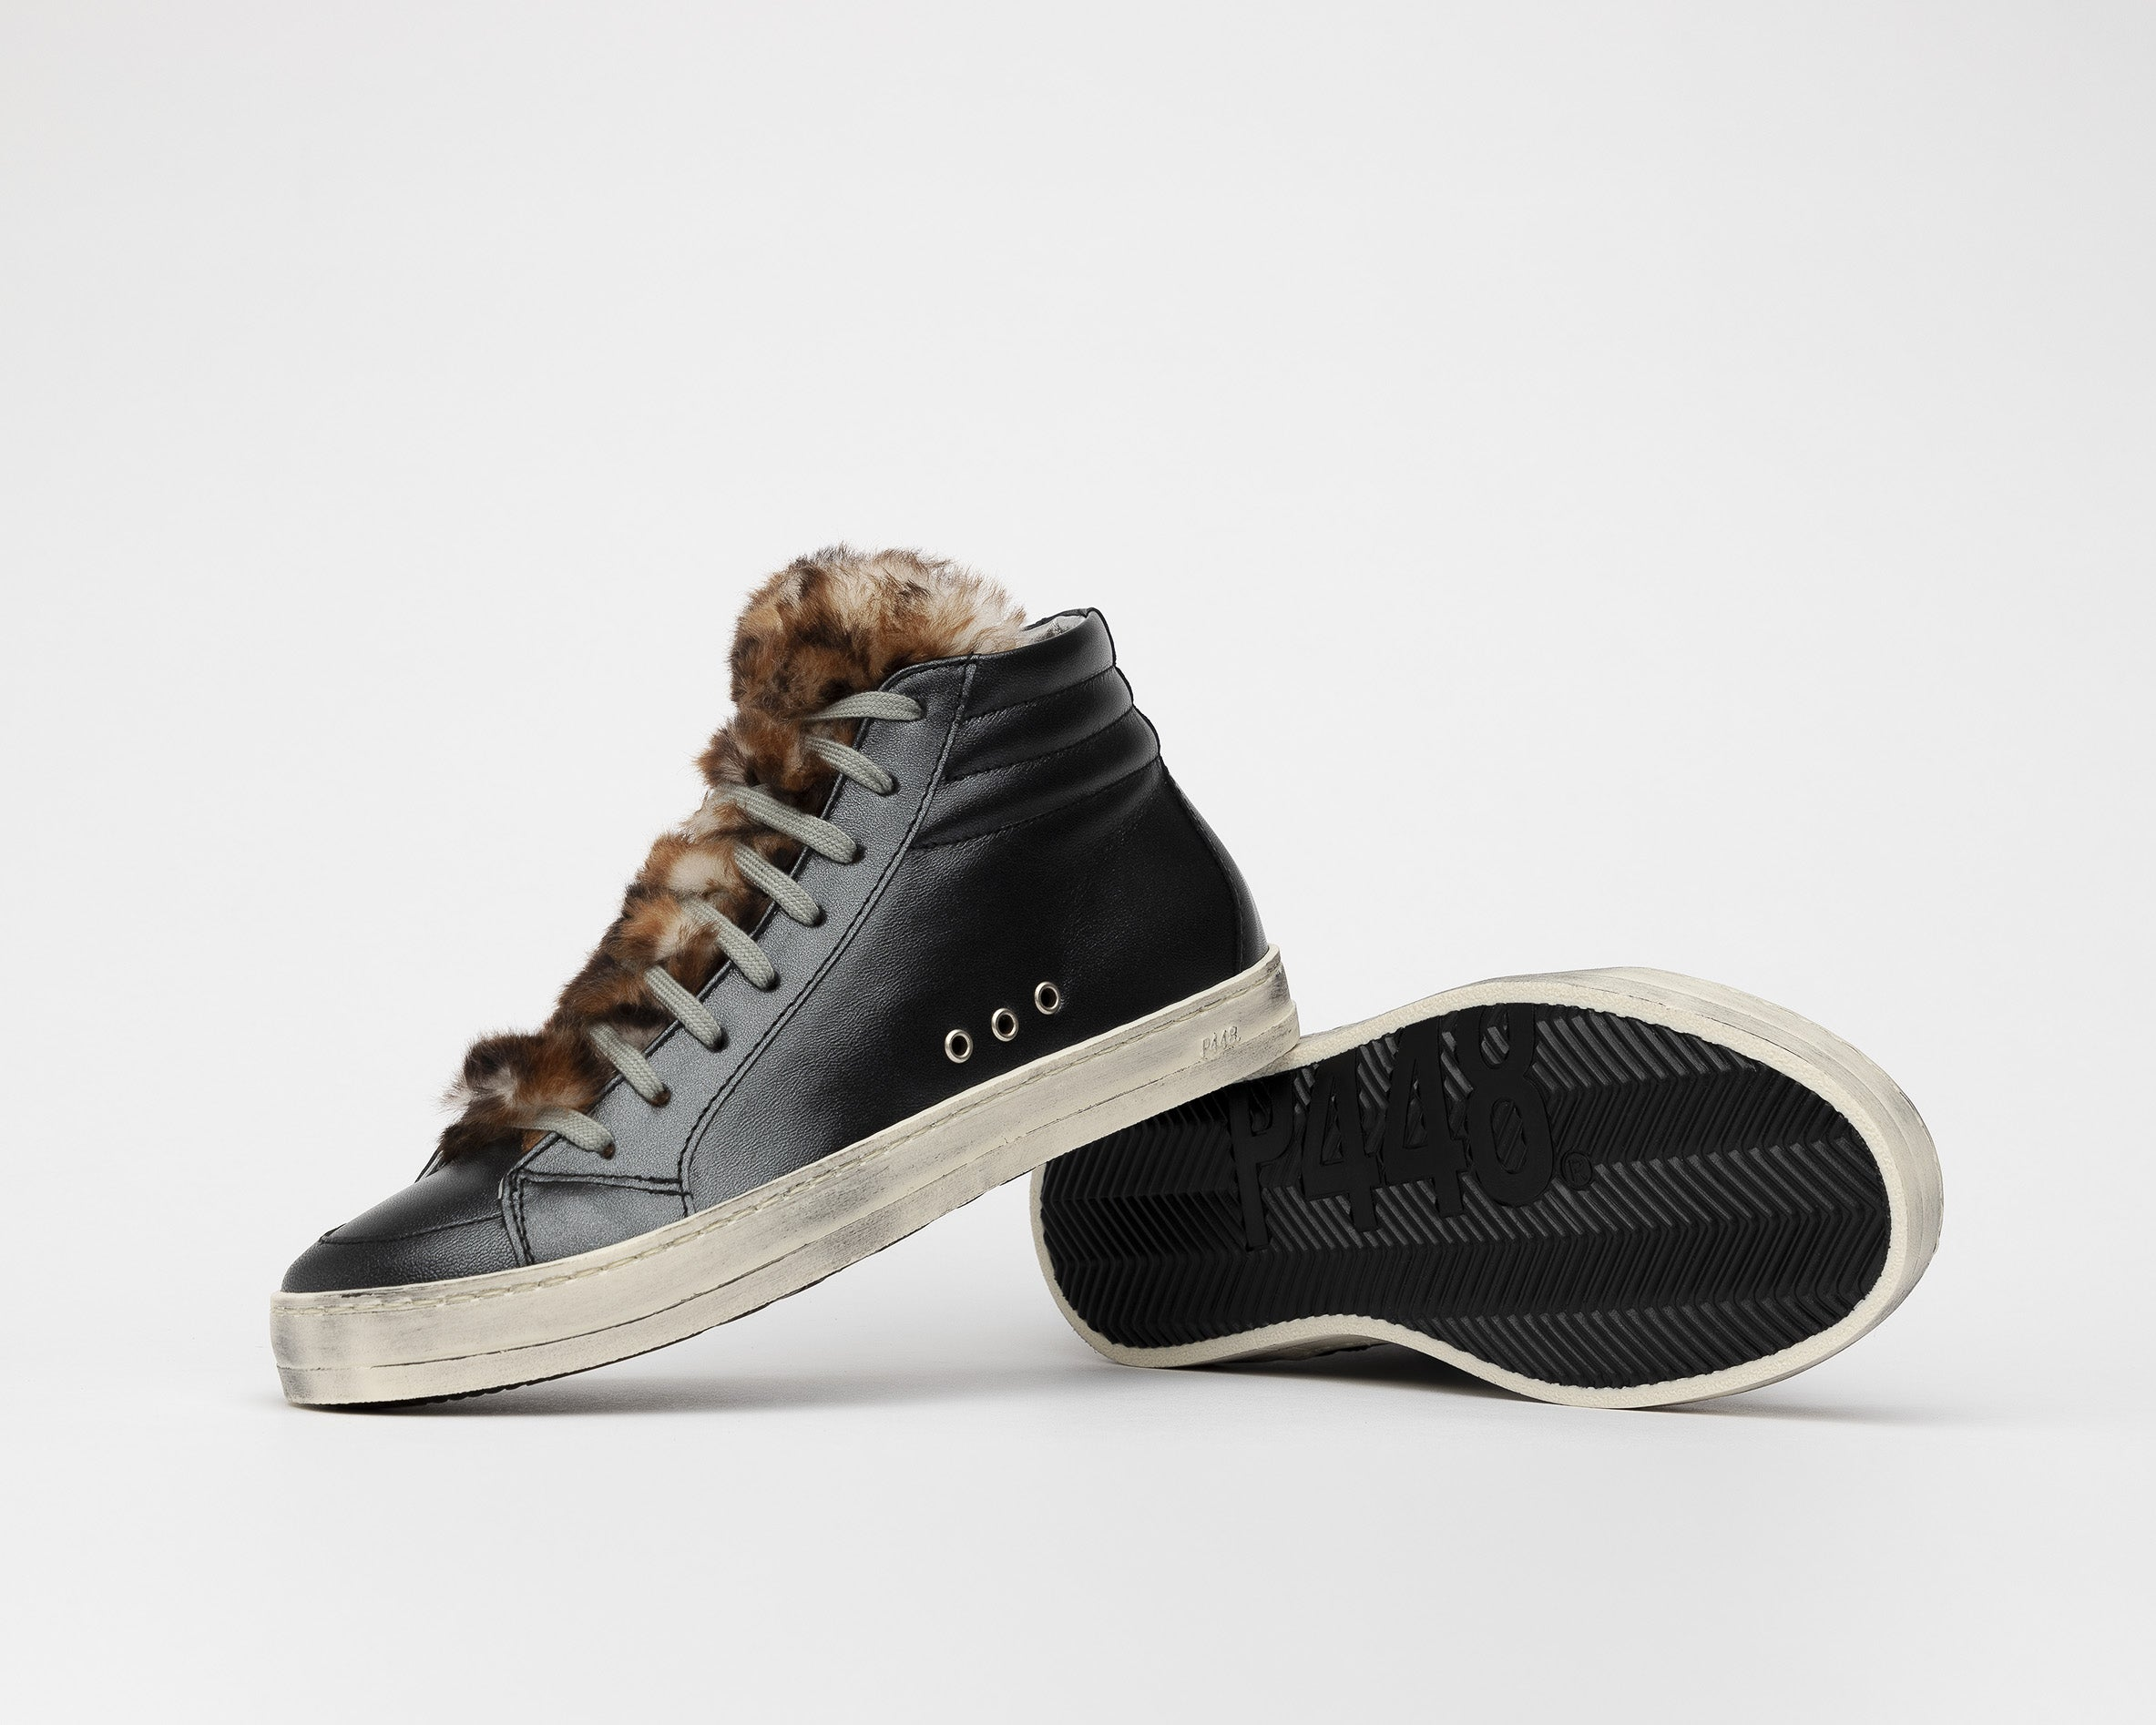 Skate High-Top Sneaker in Leopard Fur - Detail